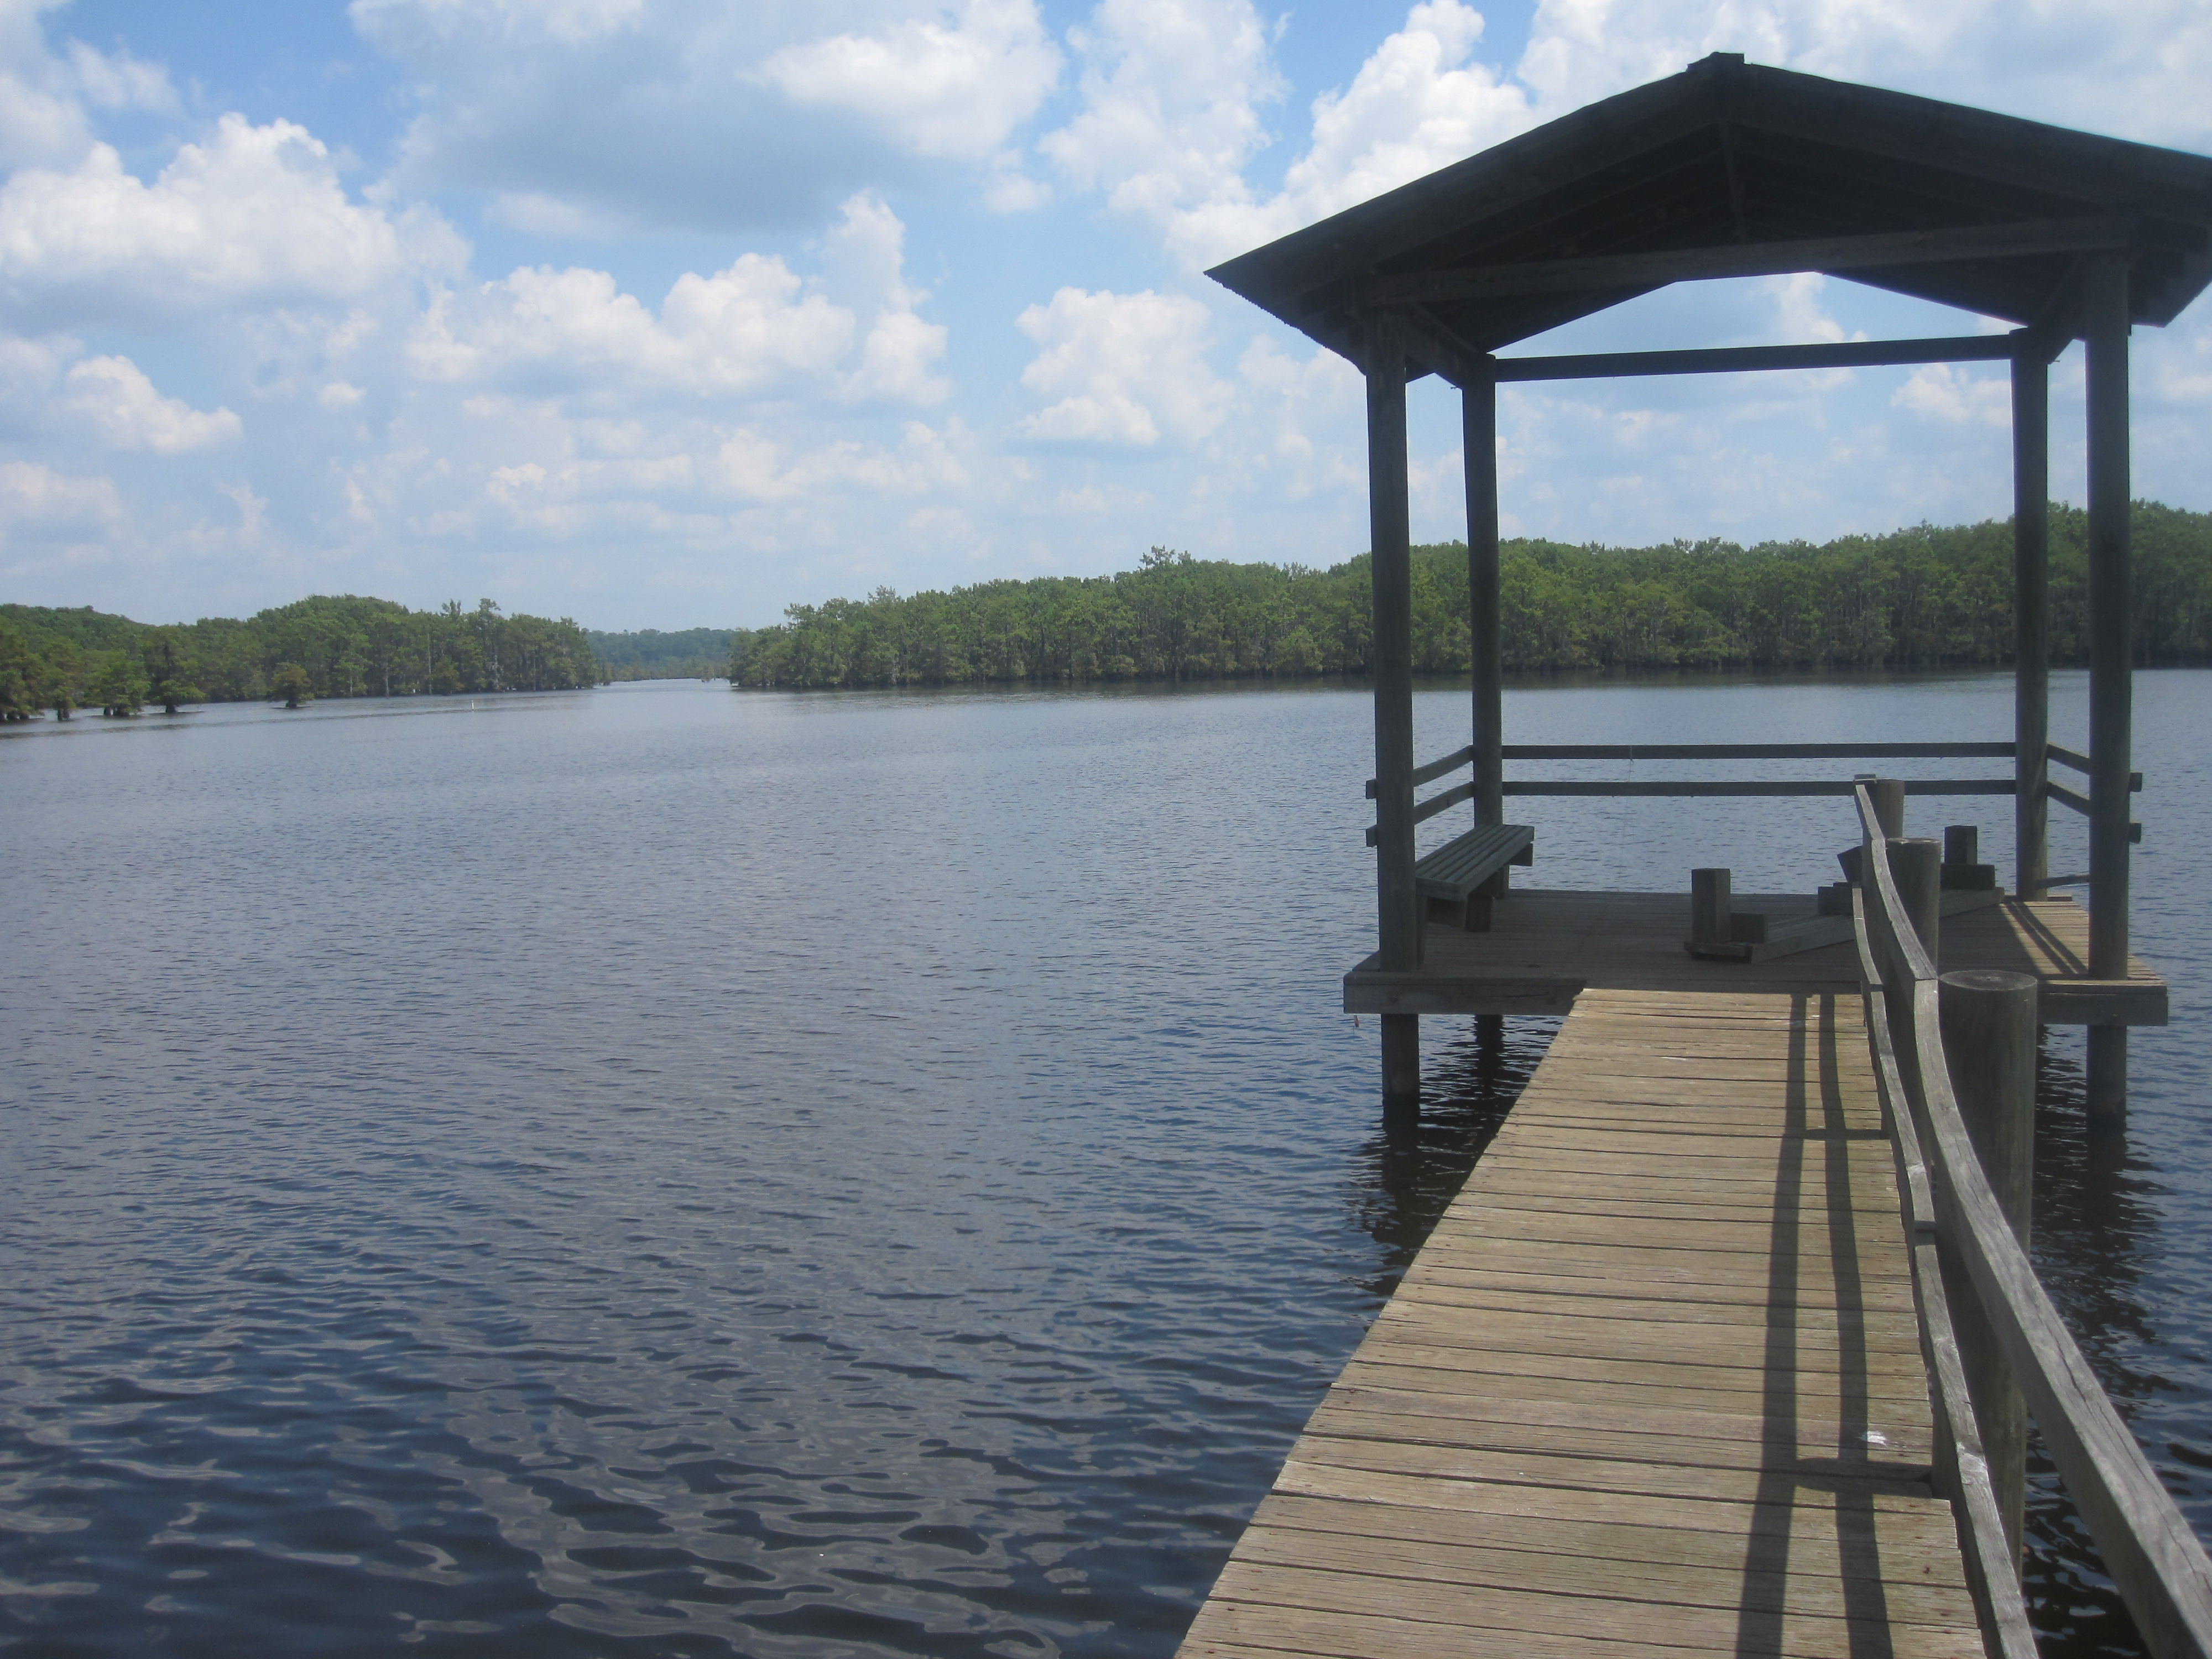 camp lake black singles Cottage 6: sleeps 8 (maximum occupancy) 3-bdrm cottage with full bed in each plus set of bunkbeds in one bdrm located on lake front enclosed porch.